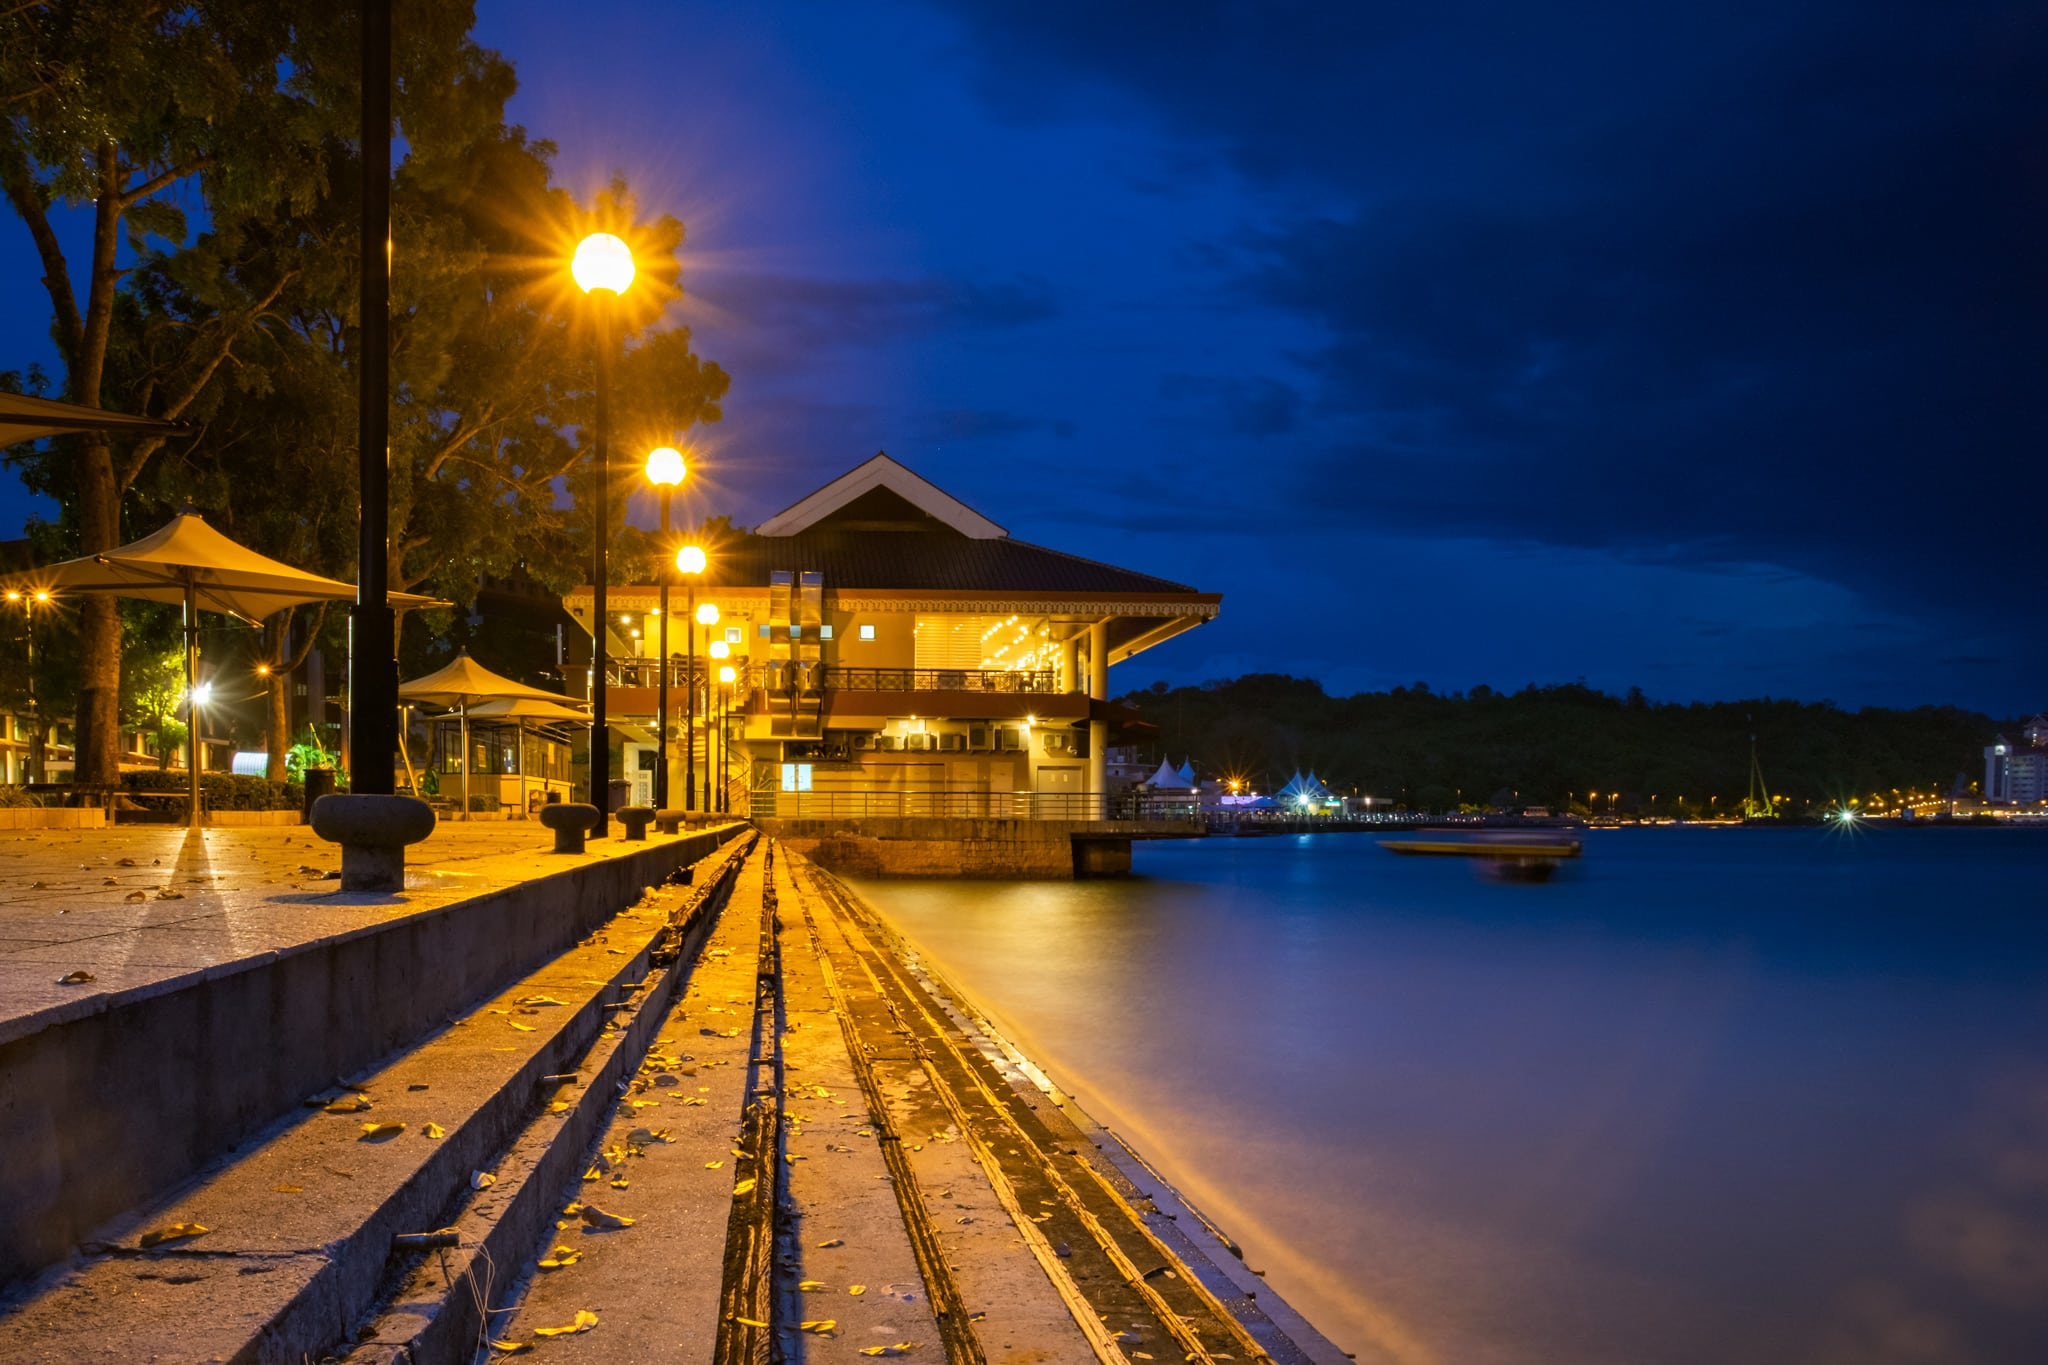 Evening shot of the pier at the waterfront of Bandar Seri Begawan, Brunei. The Horizons Seafood Restaurant is in the background.